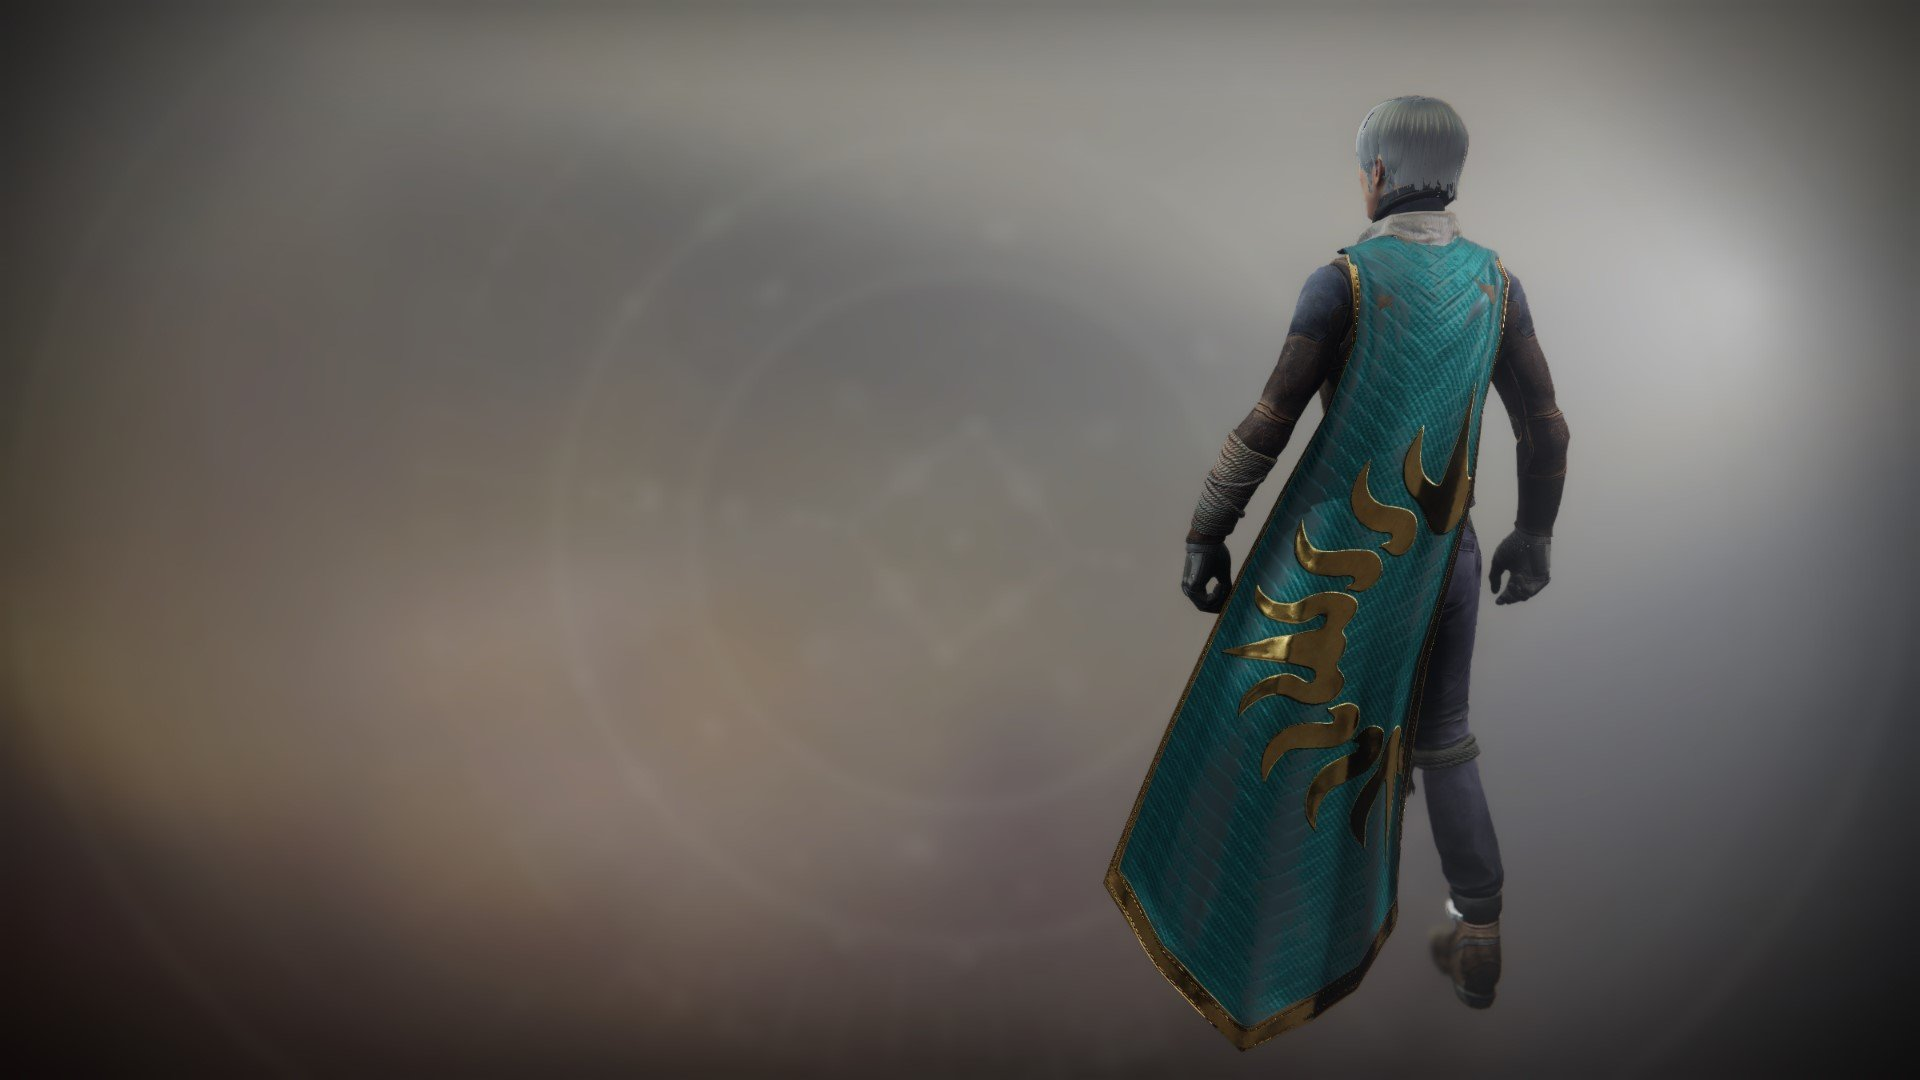 An in-game render of the Cloak of the Exile.